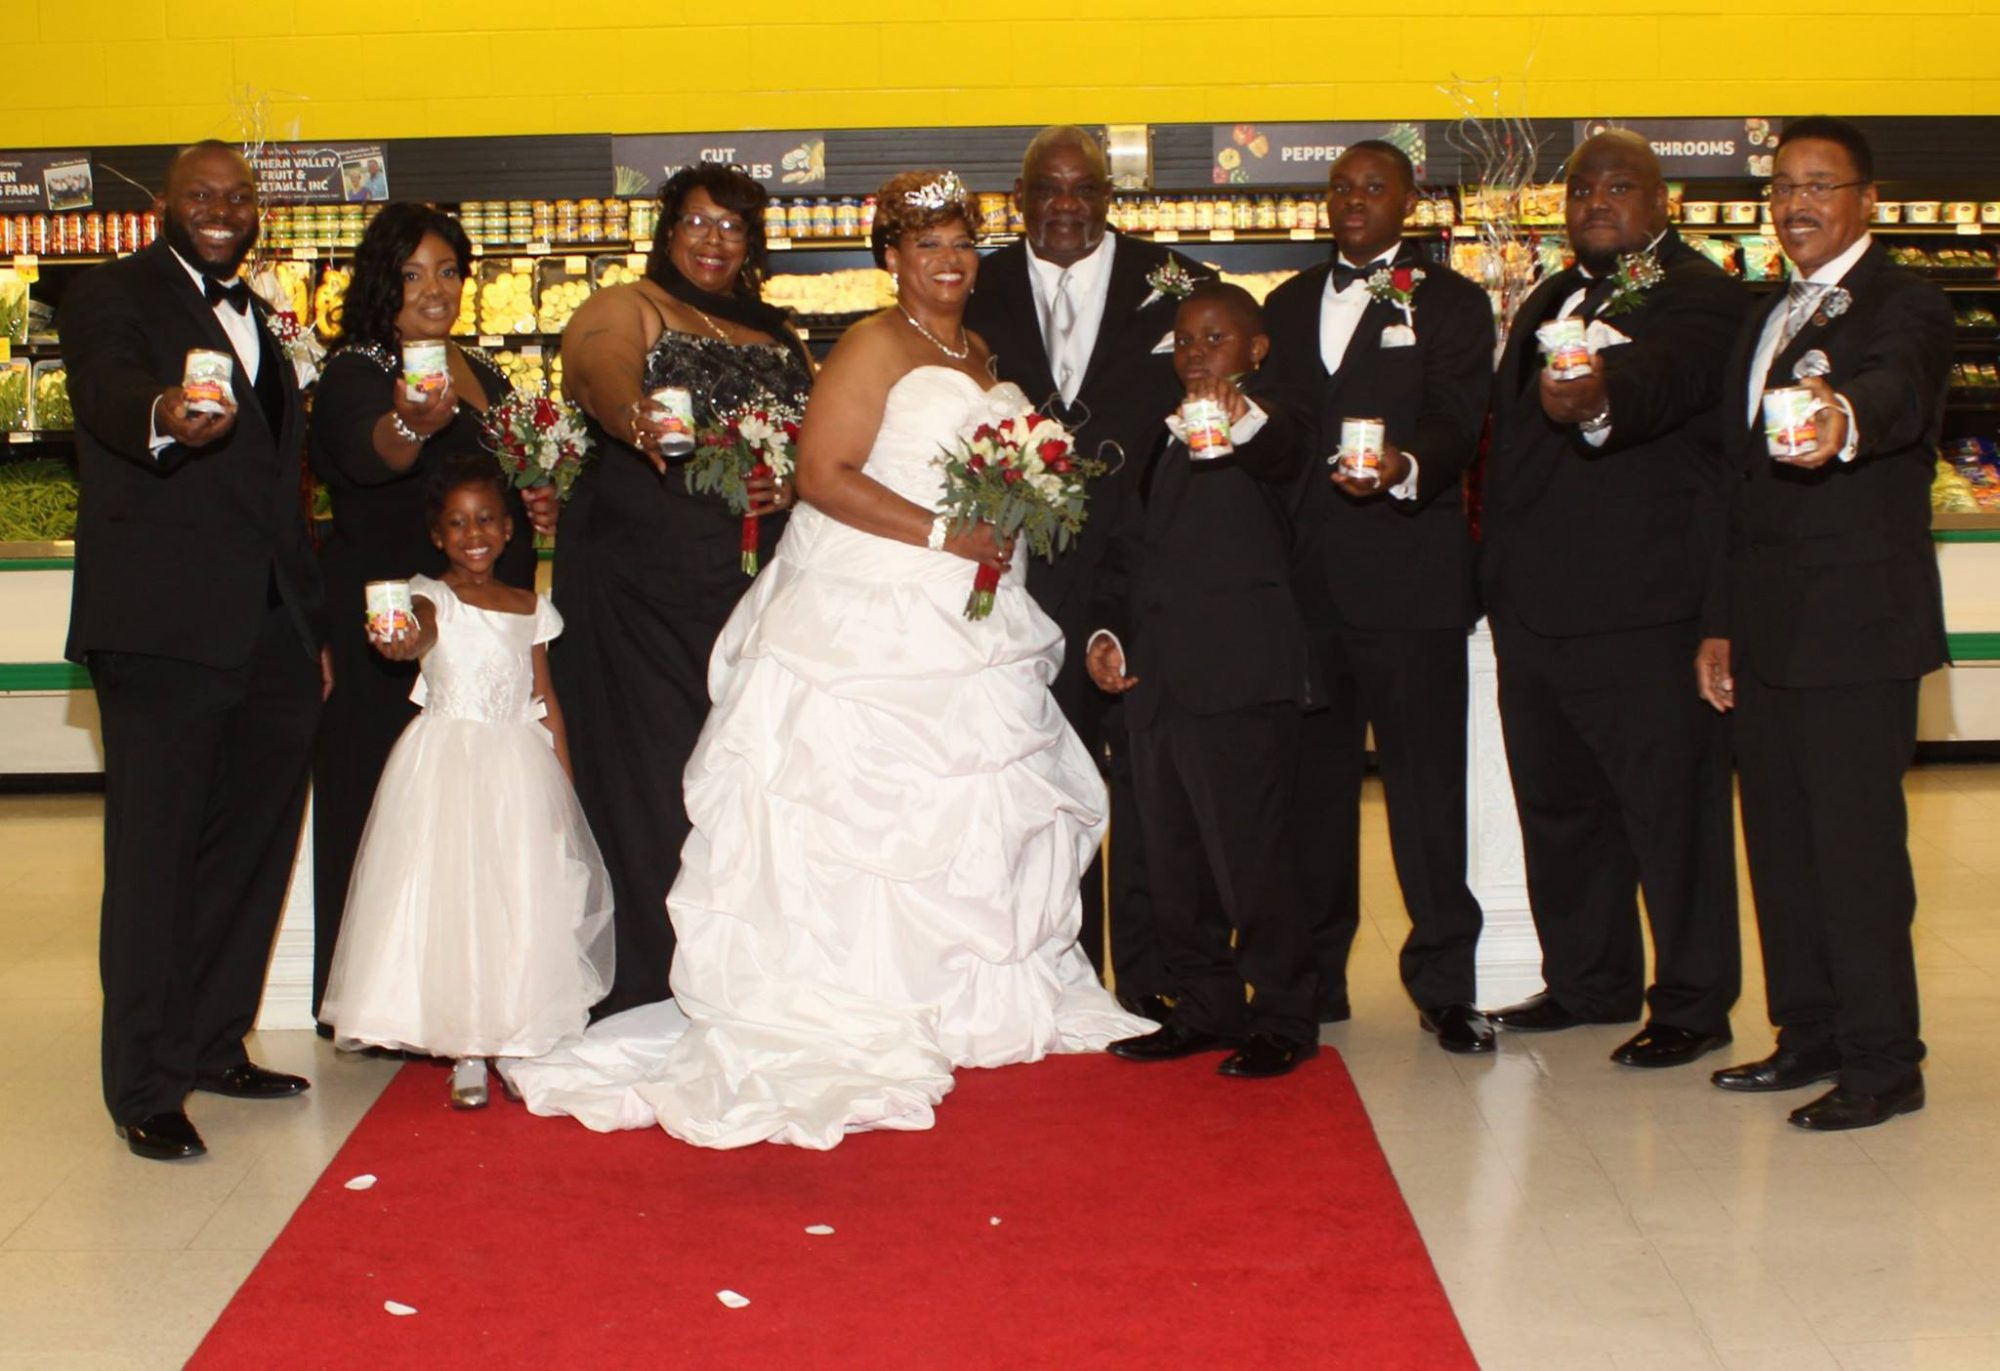 This Couple Got Married In a Grocery Store On Thanksgiving